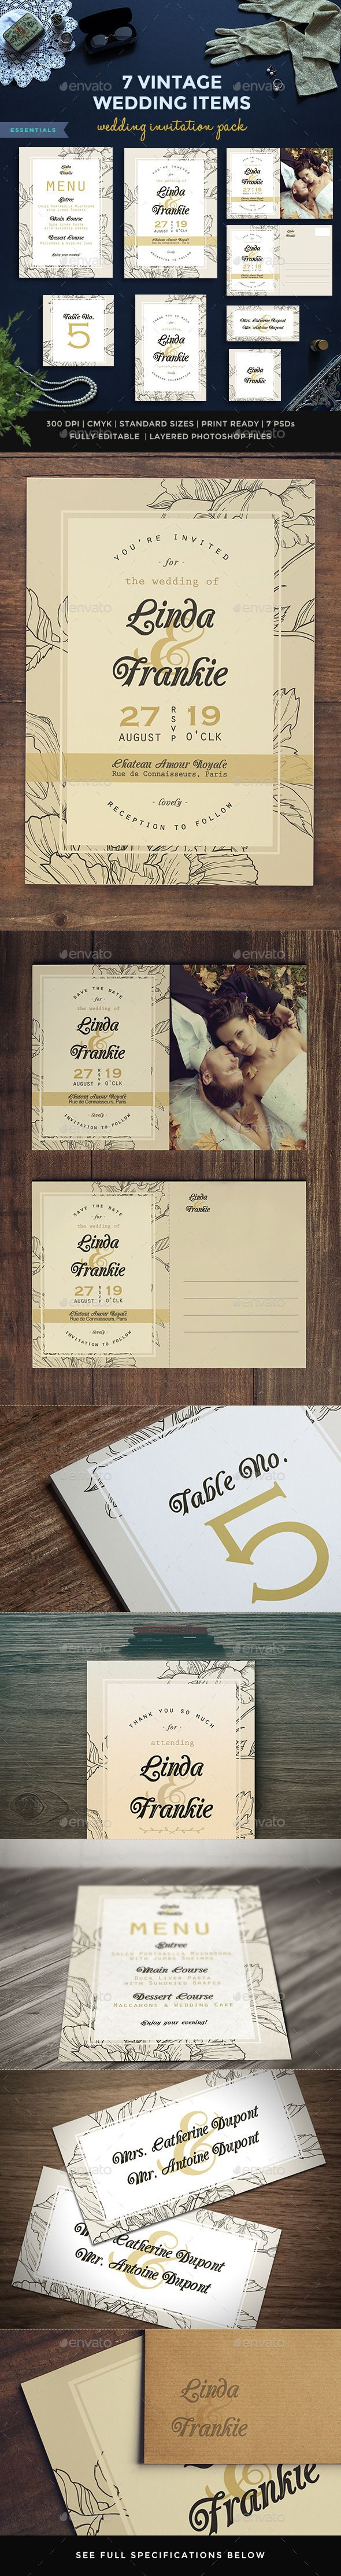 wedding invitation template themeforest%0A cover letter for office coordinator